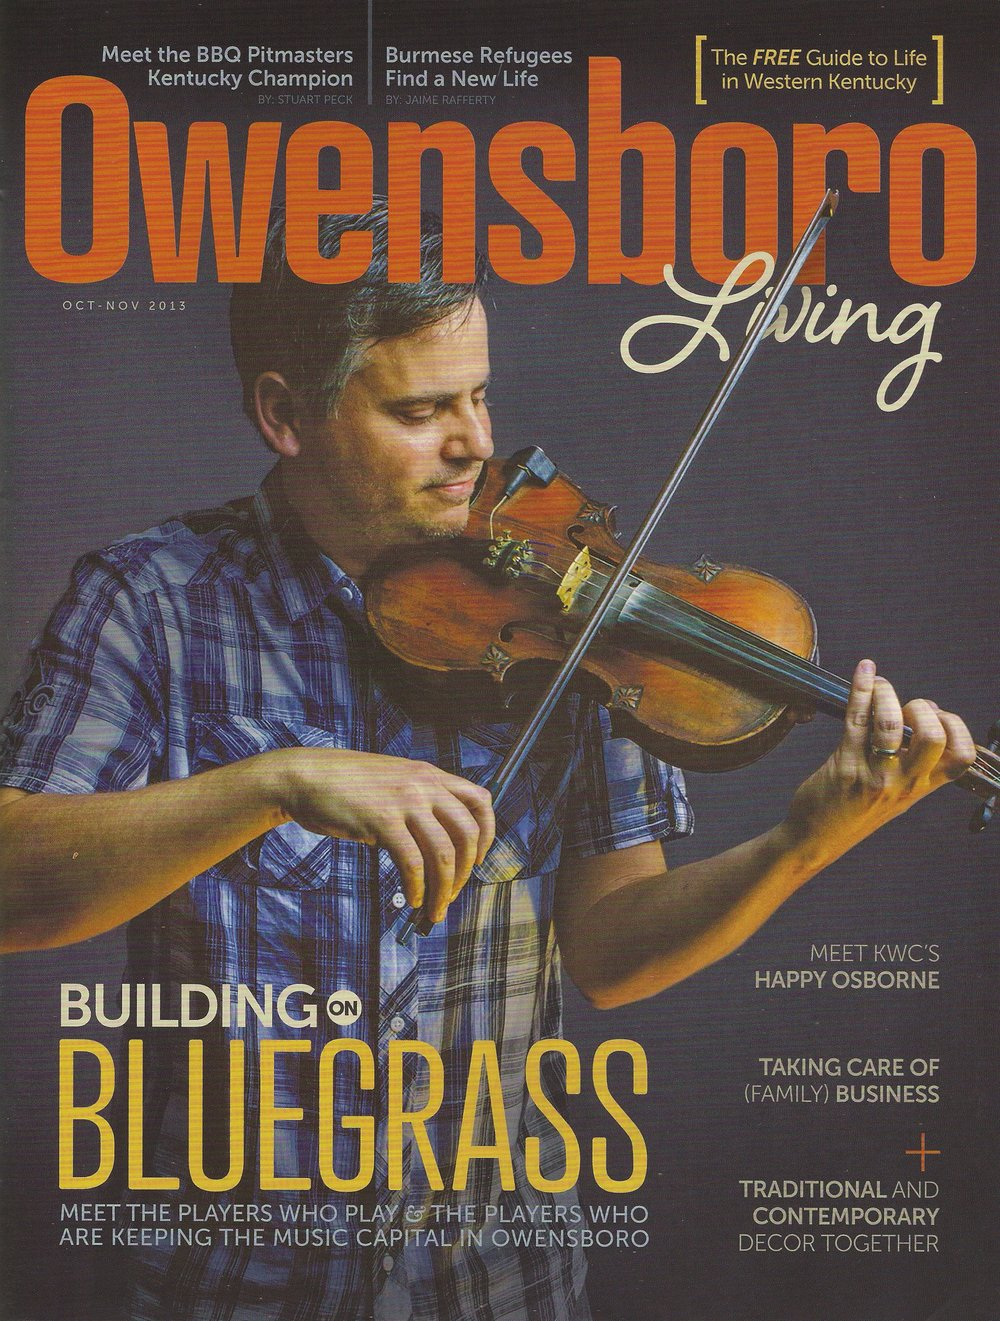 Taking care of the (family) business.     Owensboro Living Magazine - October/ November 2013